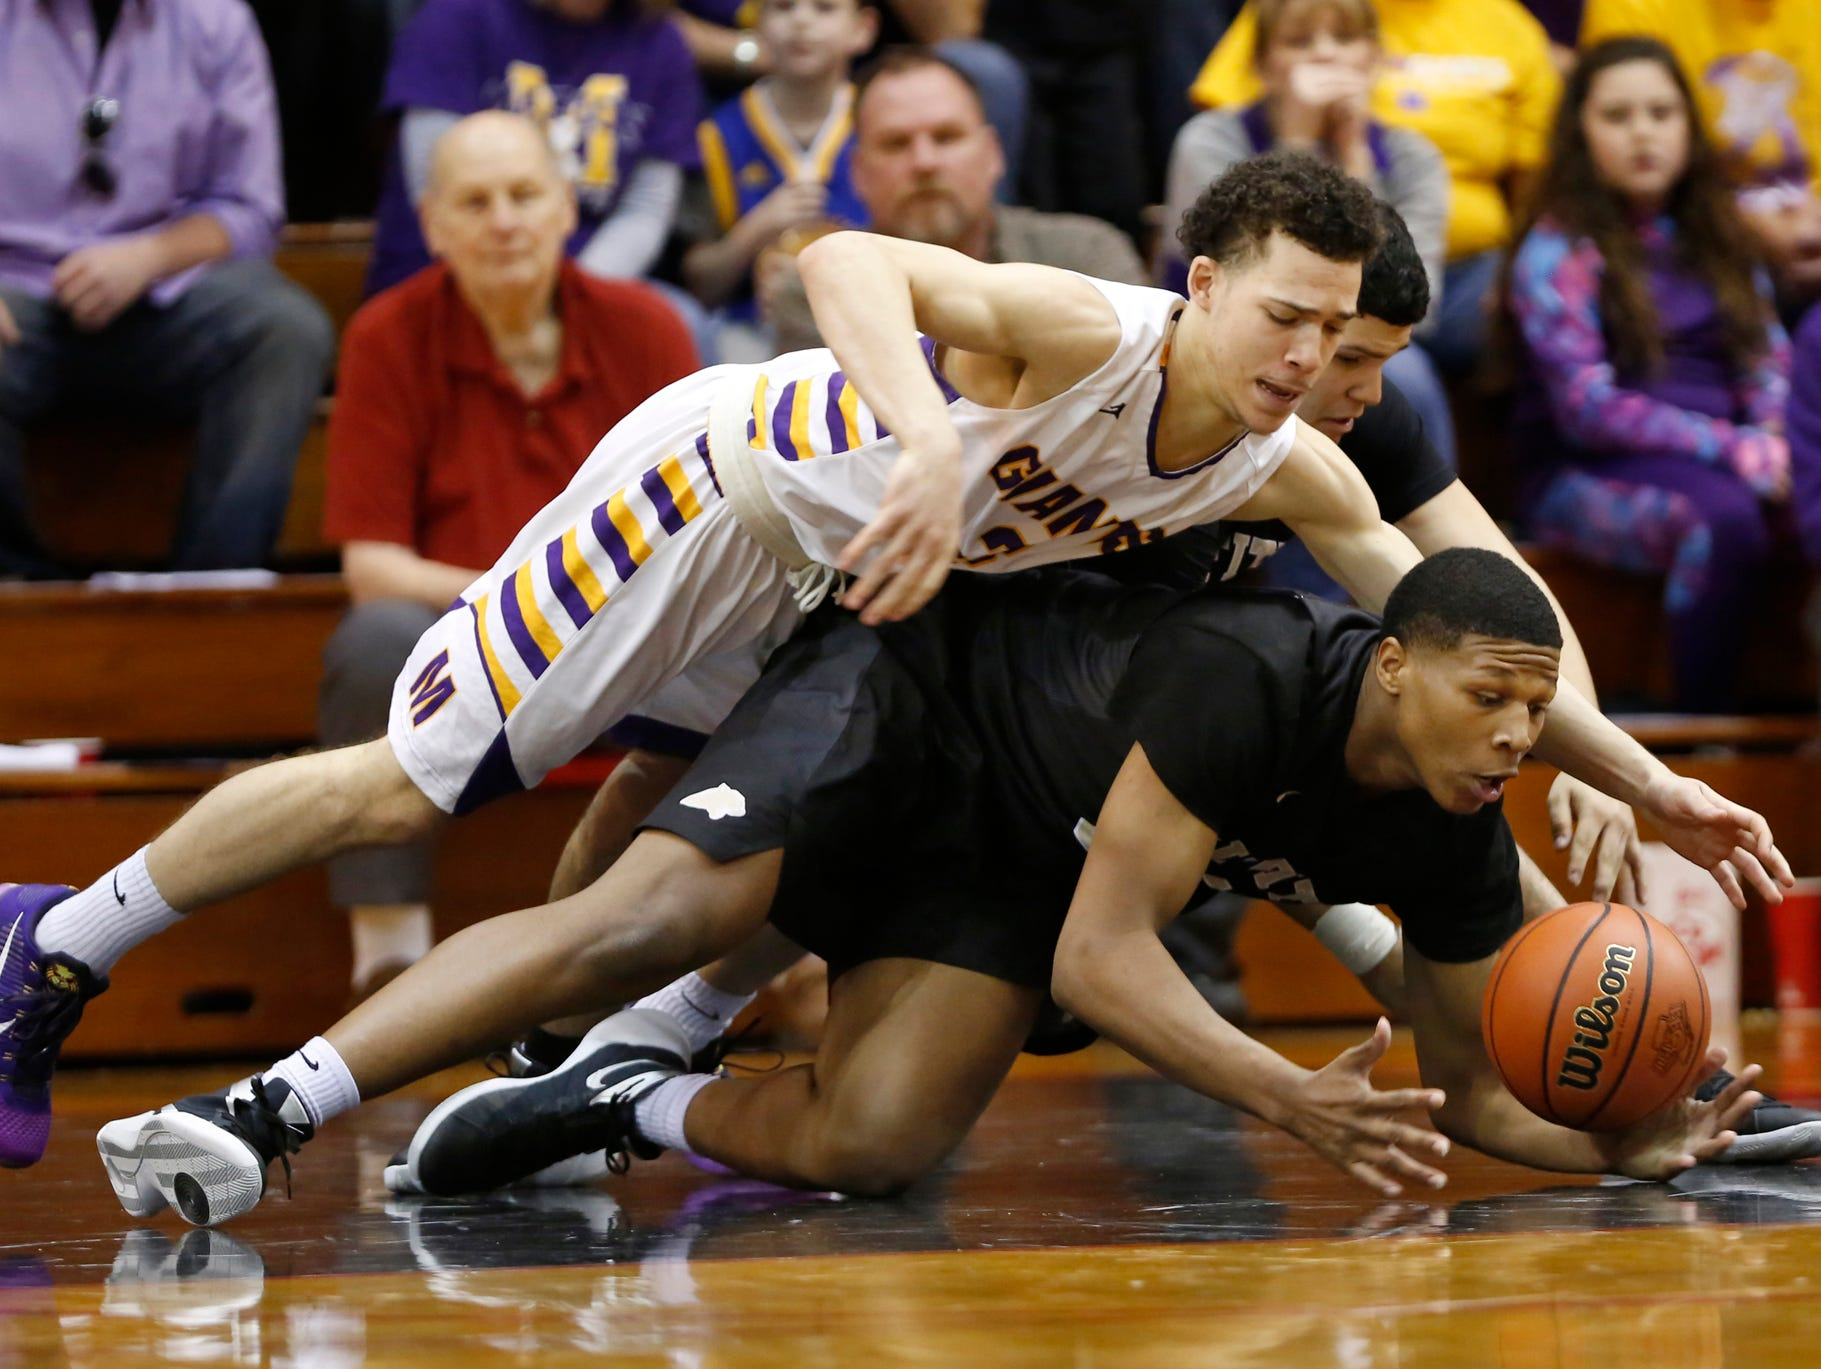 Marion's Tim Leavell, top, and Griffith's Cornell Hampton dive for a loose ball in the Class 3A basketball semistate Wednesday, March 23, 2016, Lafayette Jefferson High School. Marion defeated Griffith 60-58.